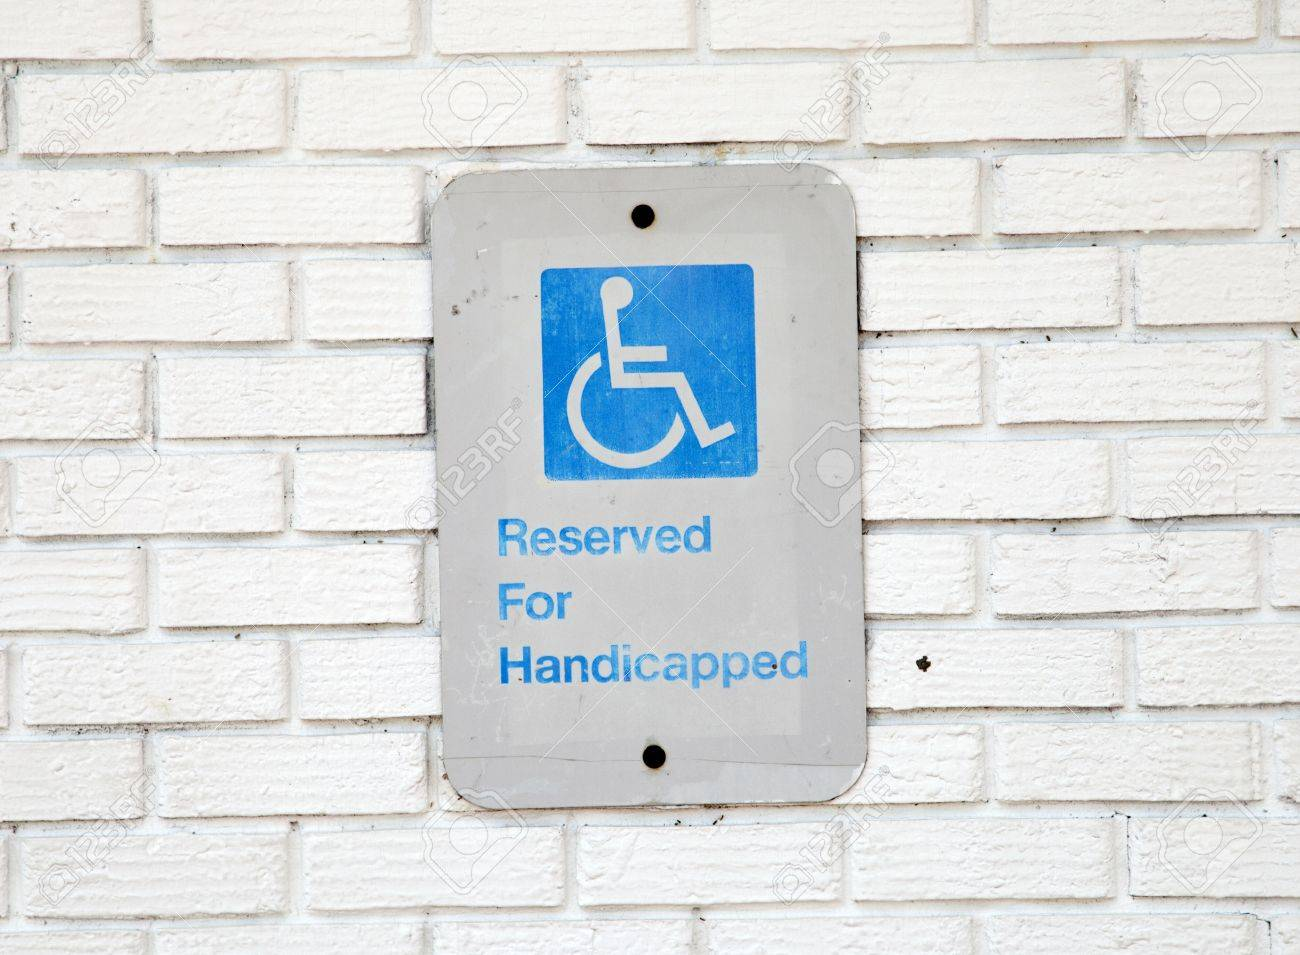 Handicapped parking sign on white brick background Stock Photo - 20942985